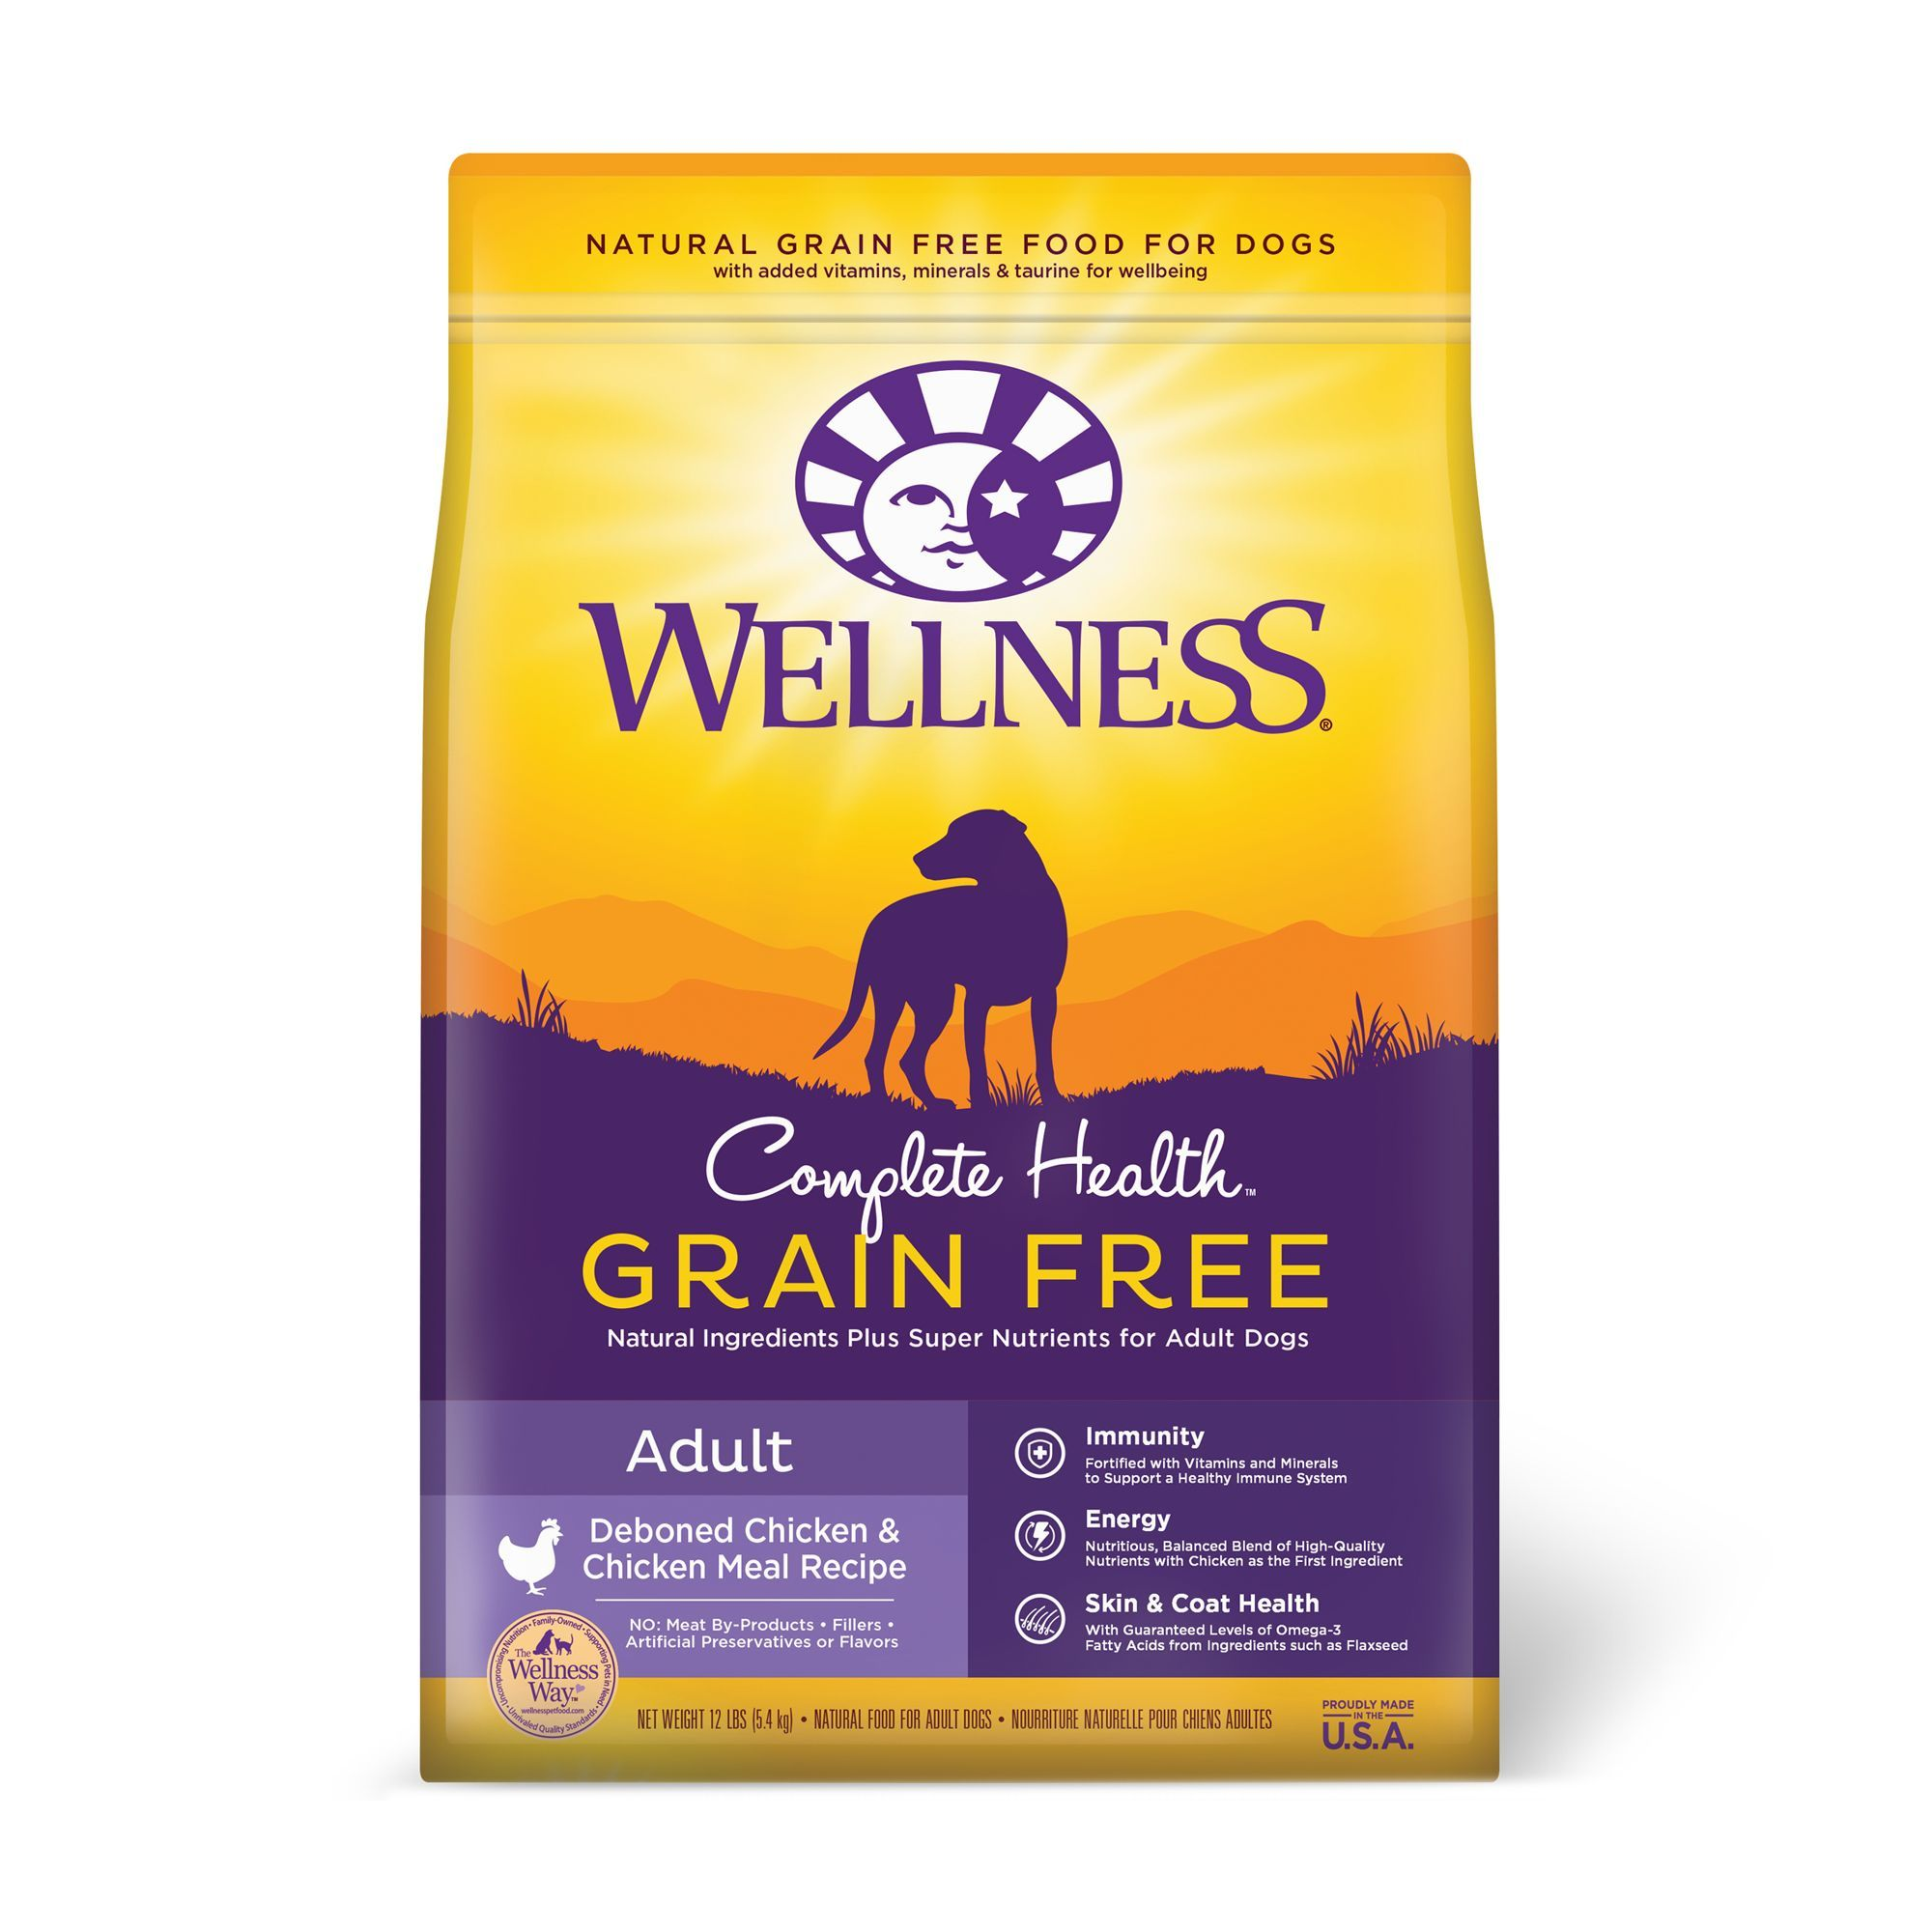 Wellness Complete Health Adult Dog Food Natural Grain Free